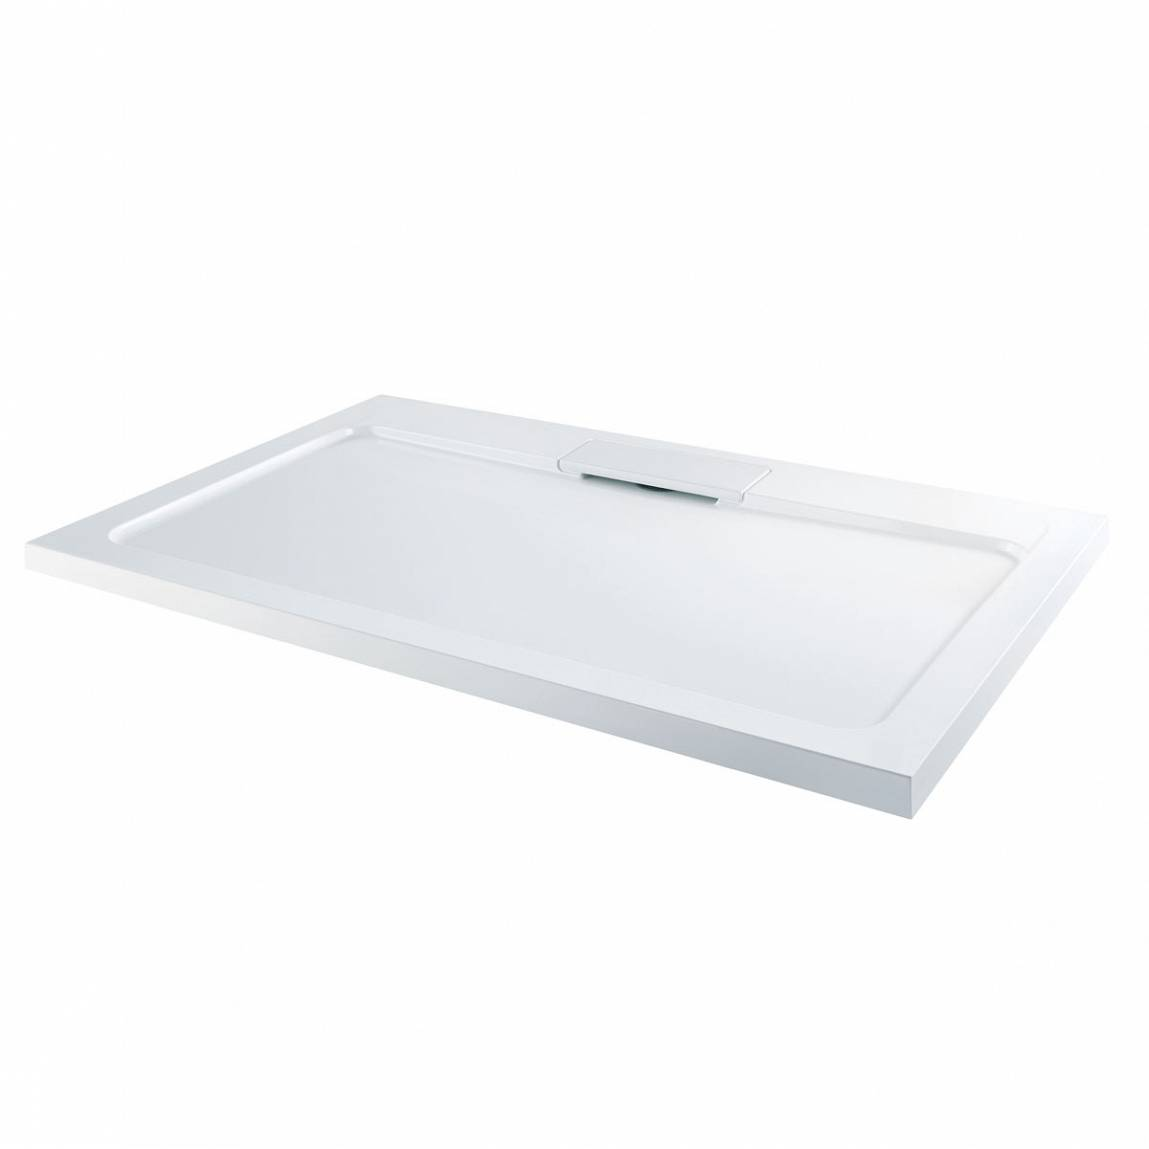 Image of Designer Rectangular Stone Shower Tray 1000 x 800